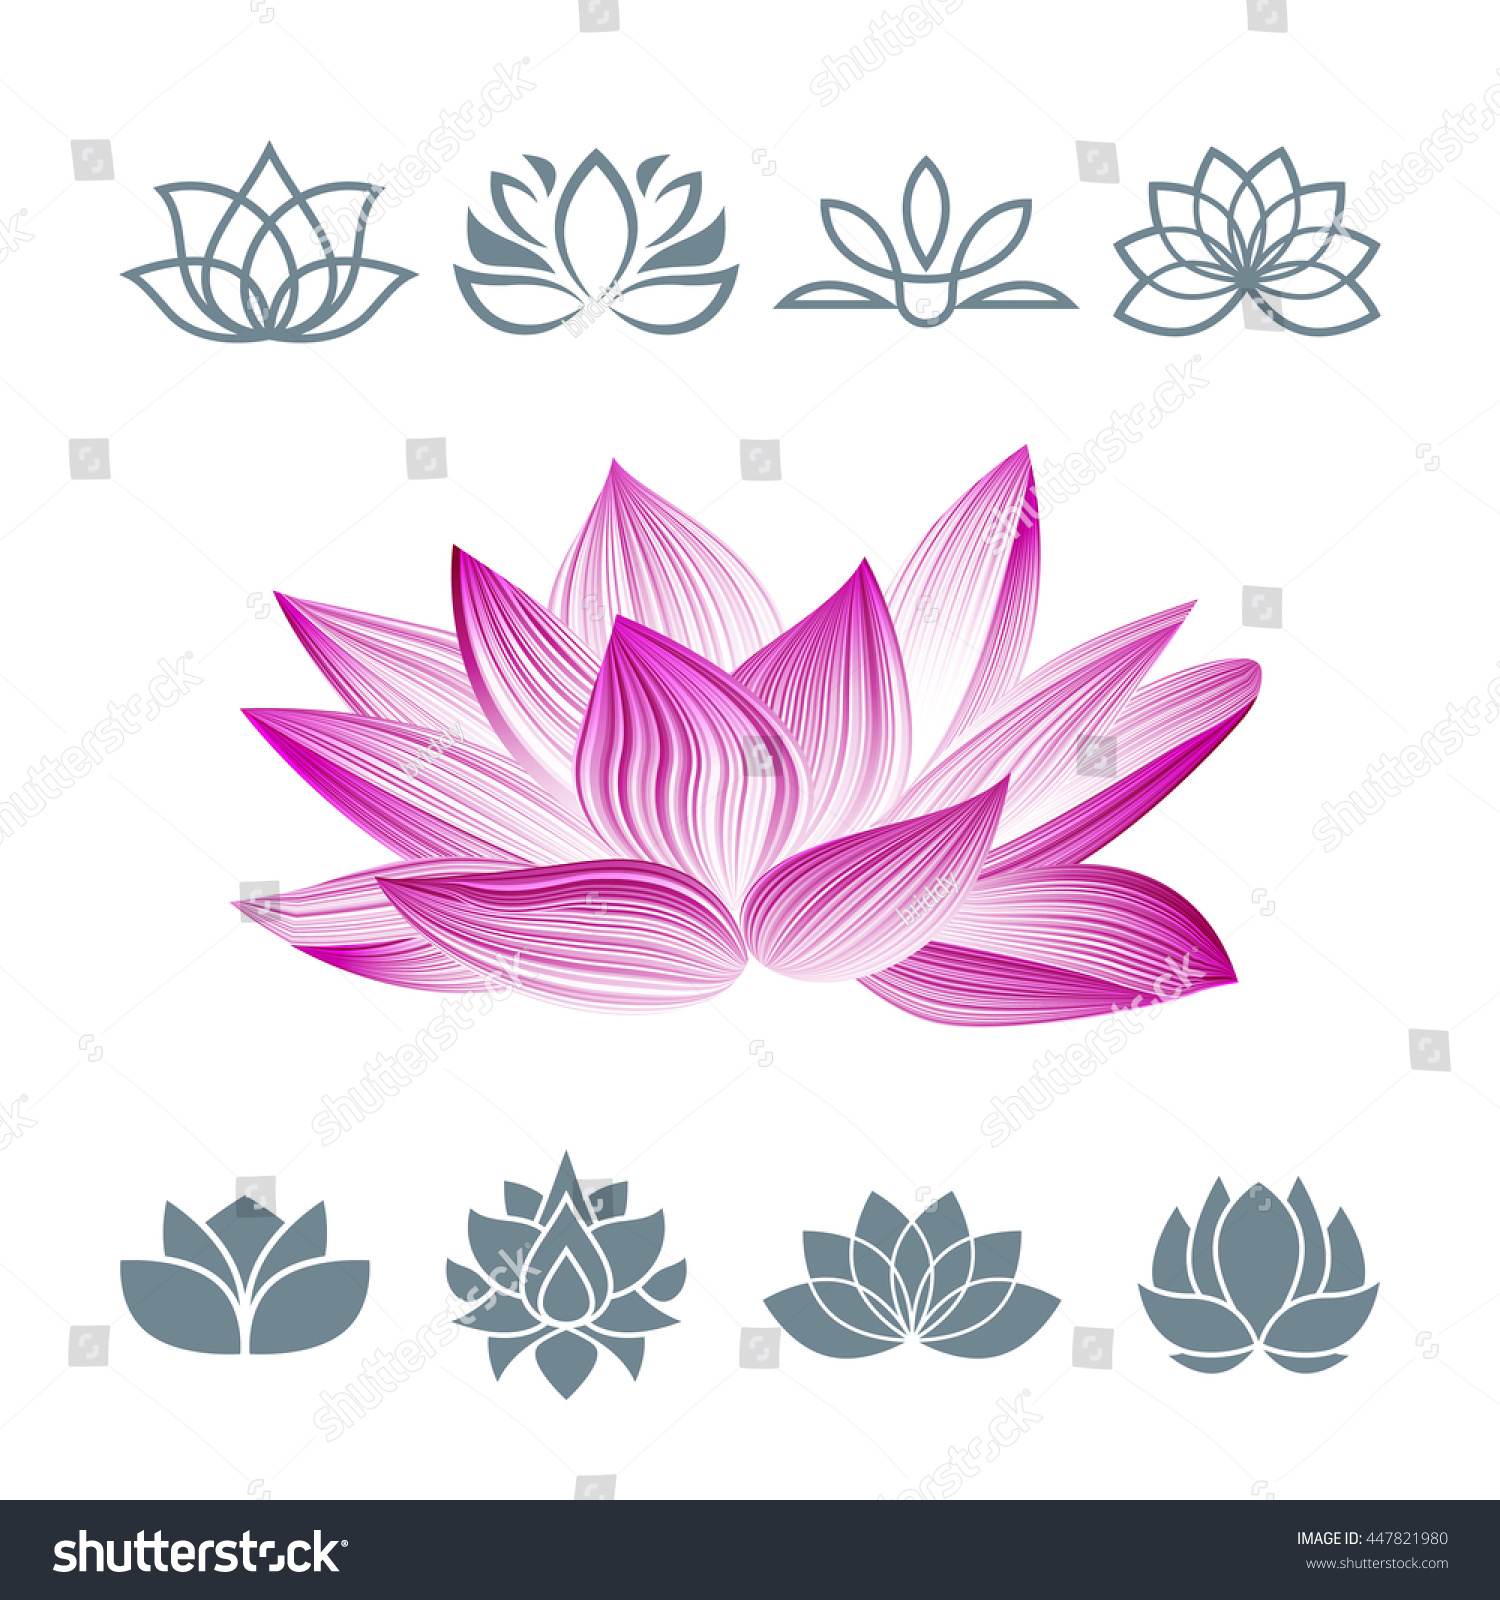 Royalty free lotus flower icons set vector floral 447821980 stock lotus flower icons set vector floral logo oriental symbol isolated on white silhouettes mightylinksfo